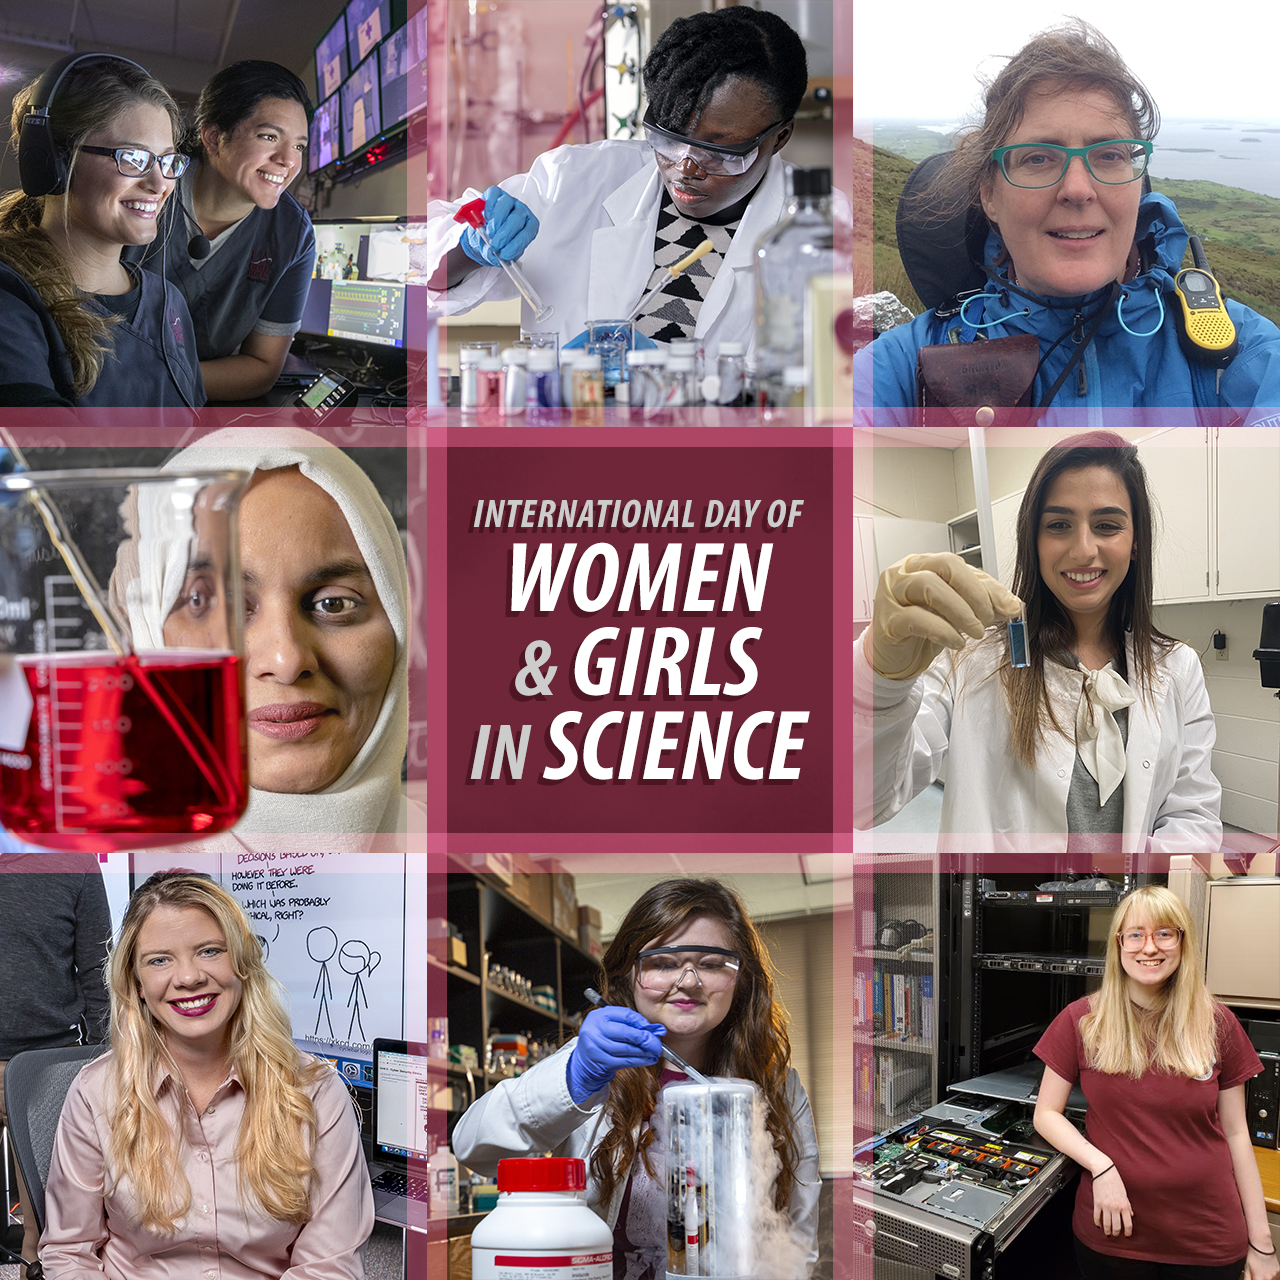 February 11 is International Day of Women and Girls in Science.